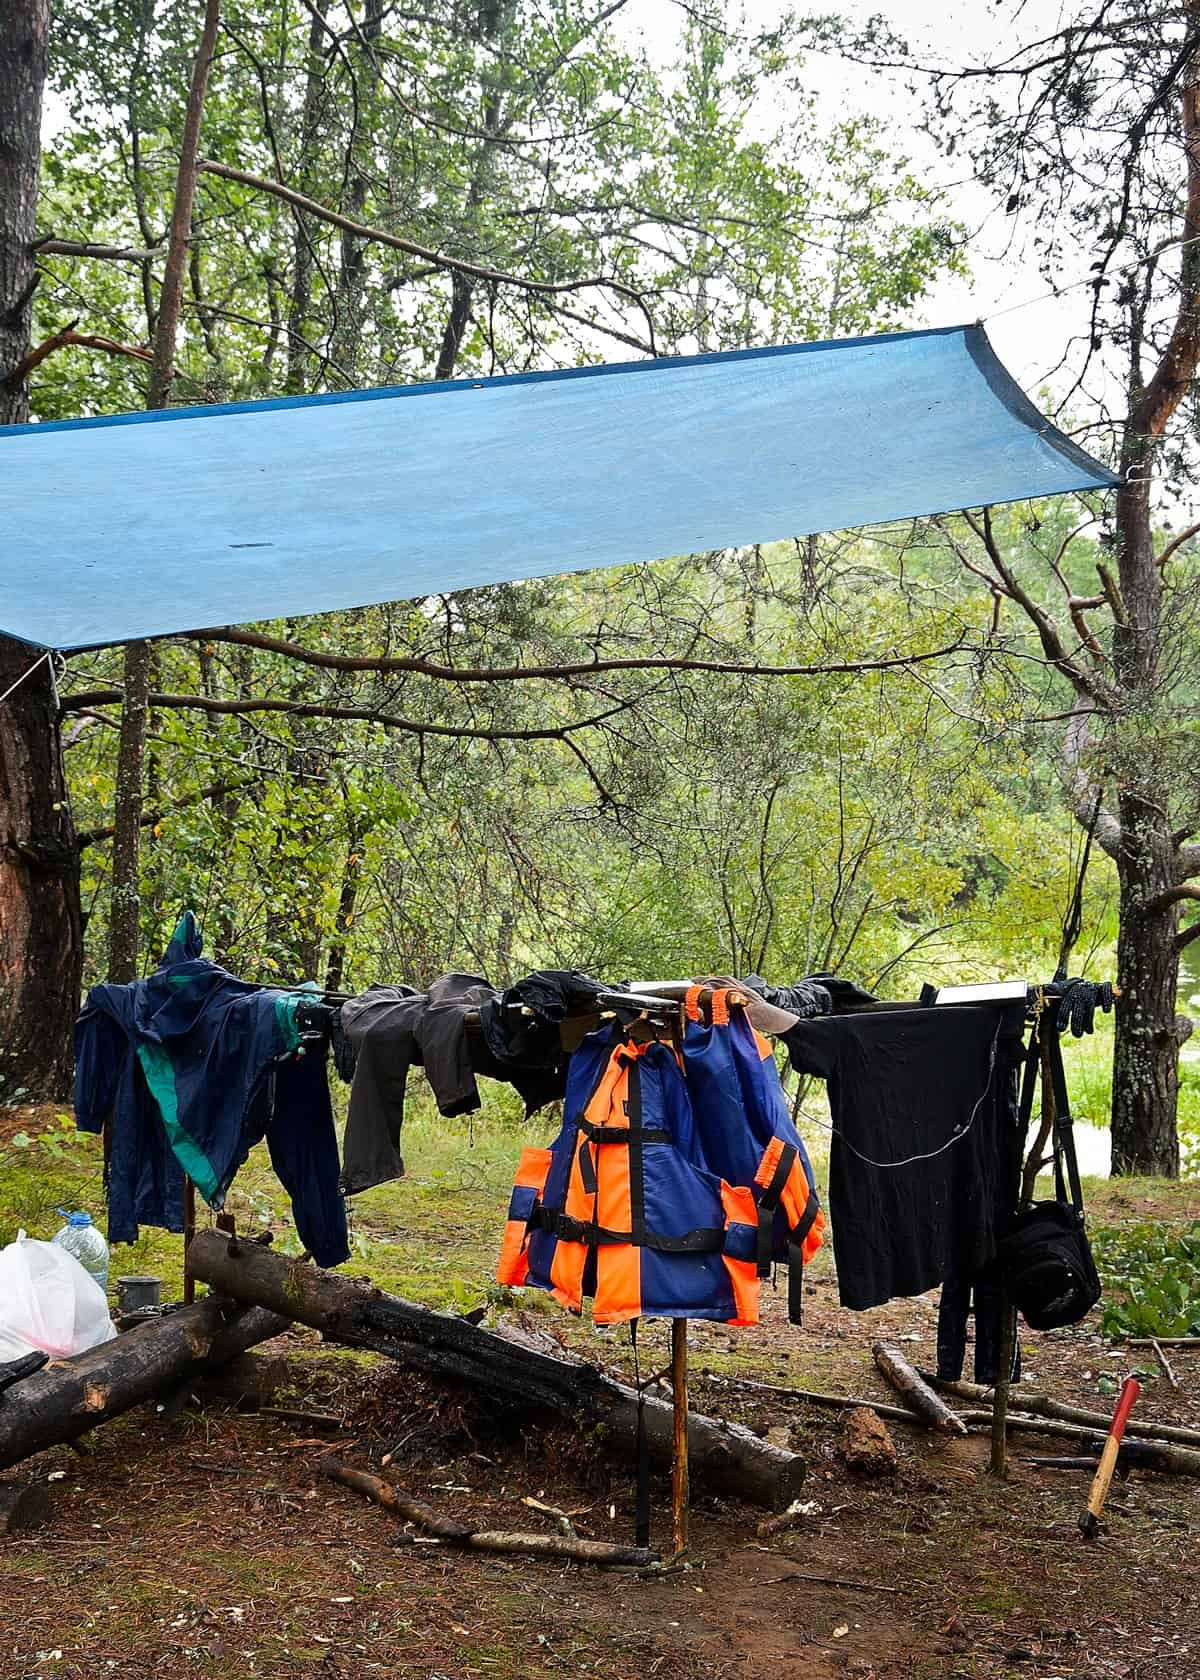 5 Best Camping Tarps For Dry Trips 7 Factors Plus Setup Tips Camping Tarp Camping Locations Camping And Hiking